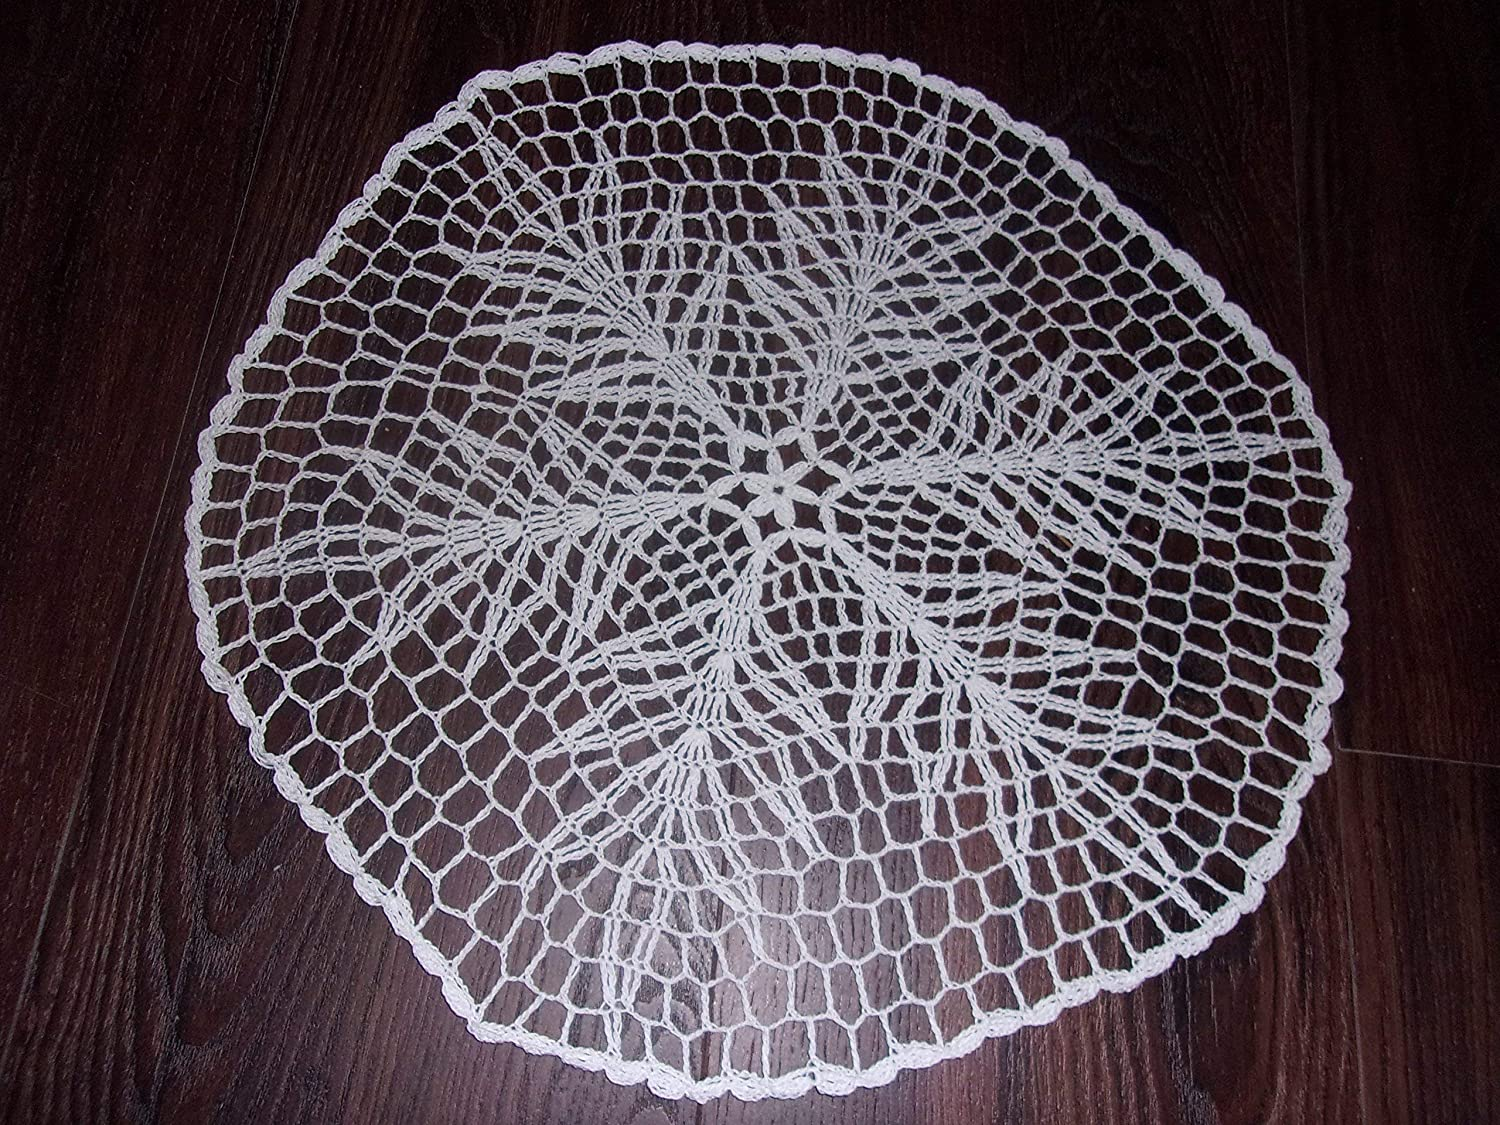 Amazon Snowflake Doily Handmade Lace Table Covering Holiday